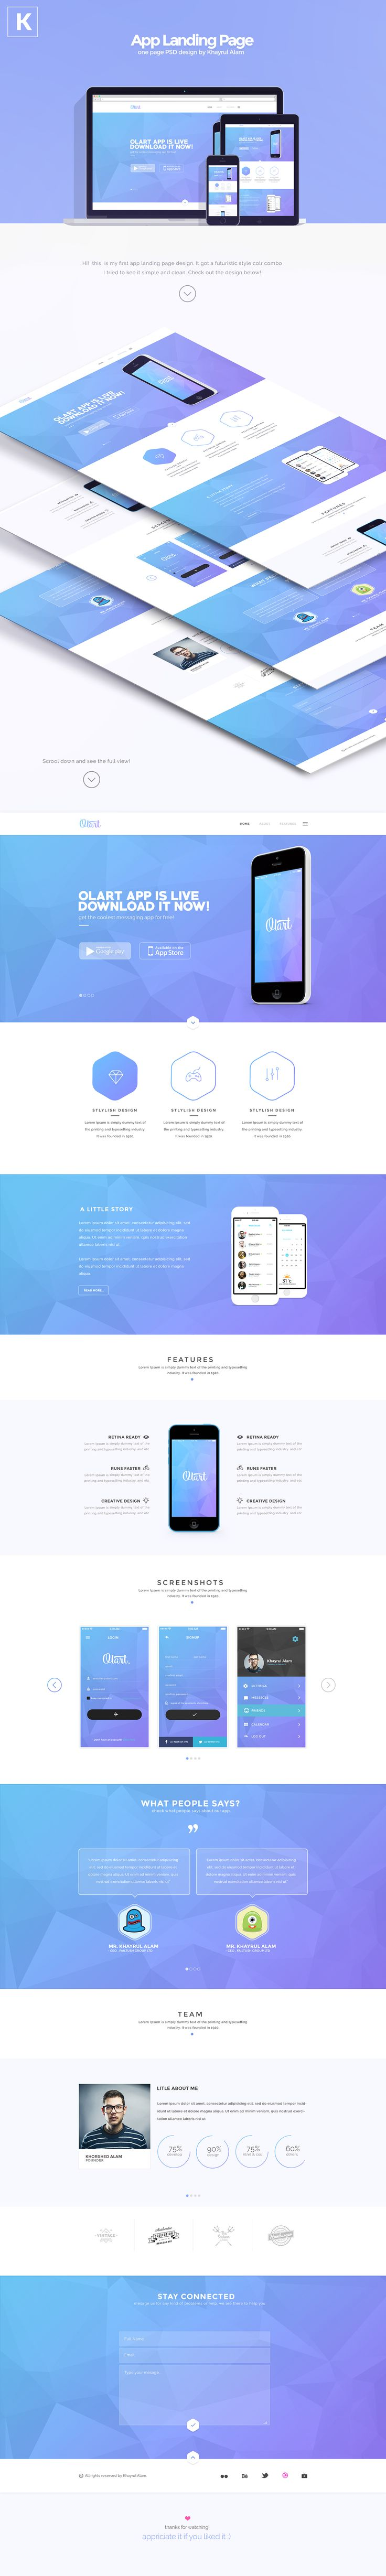 Olart - App Landing Page on Behance